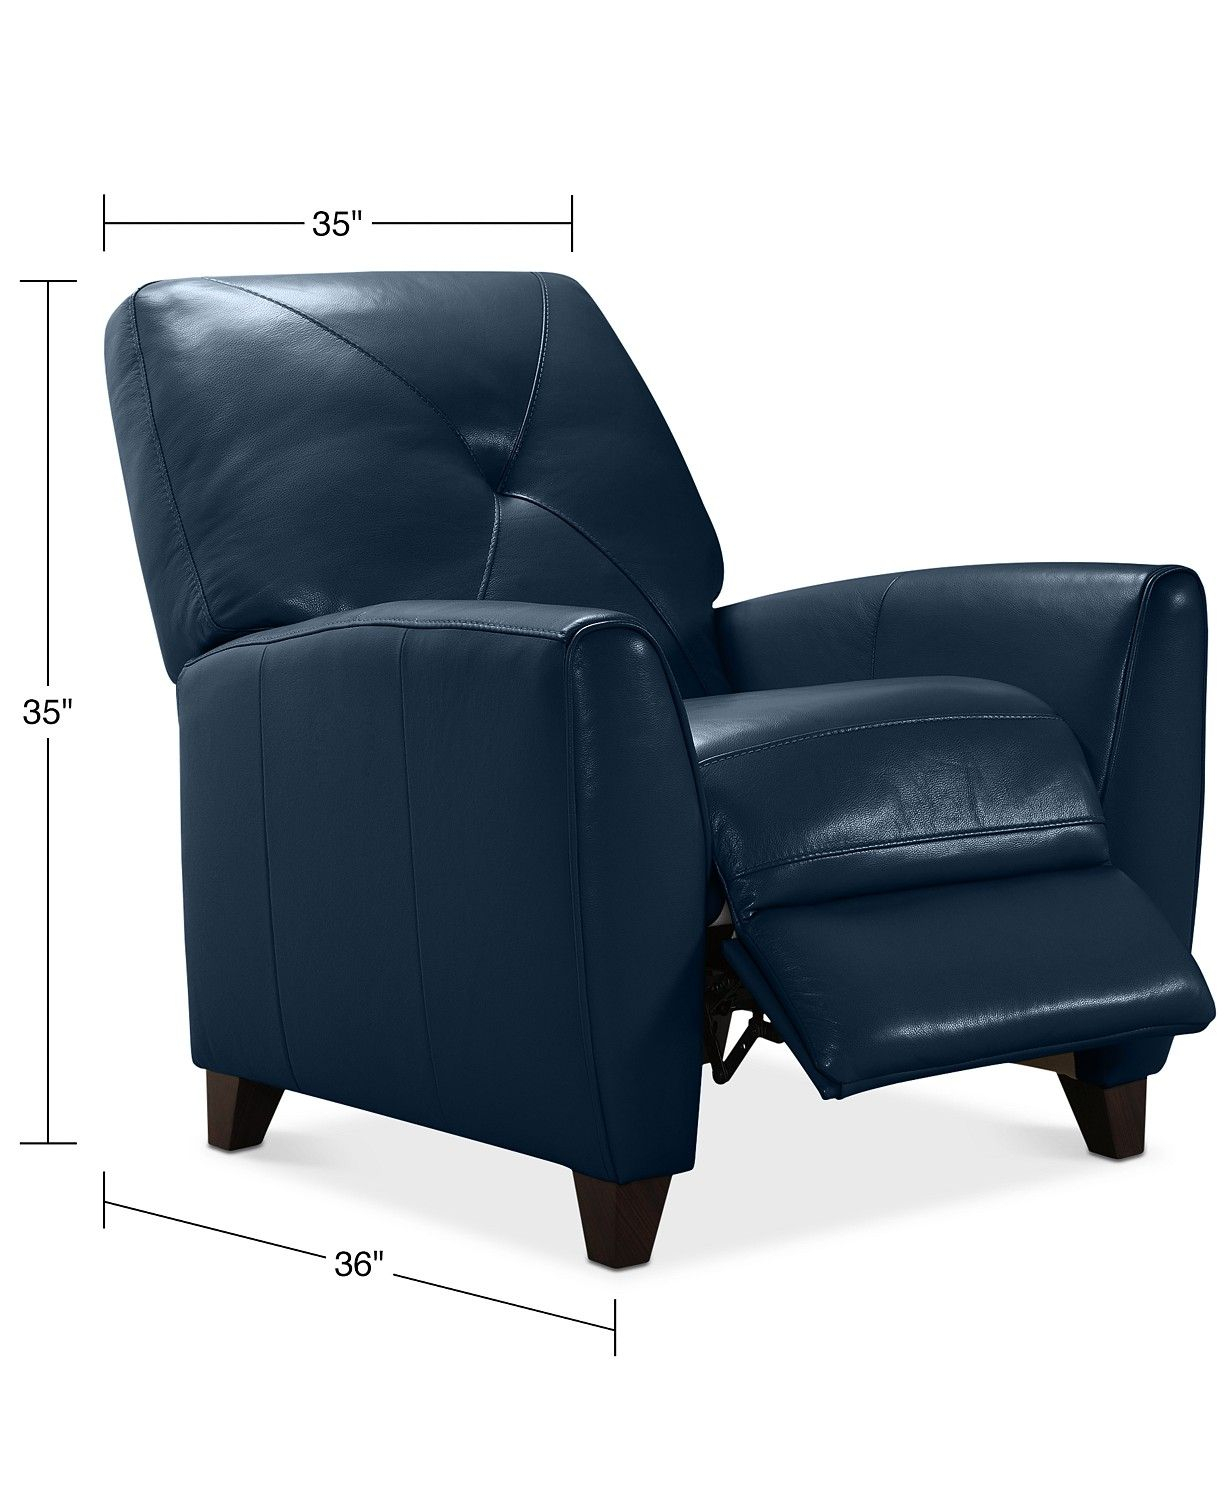 Furniture Myia Leather Pushback Recliner, Created For Macy'S For Myia Armchairs (View 14 of 15)